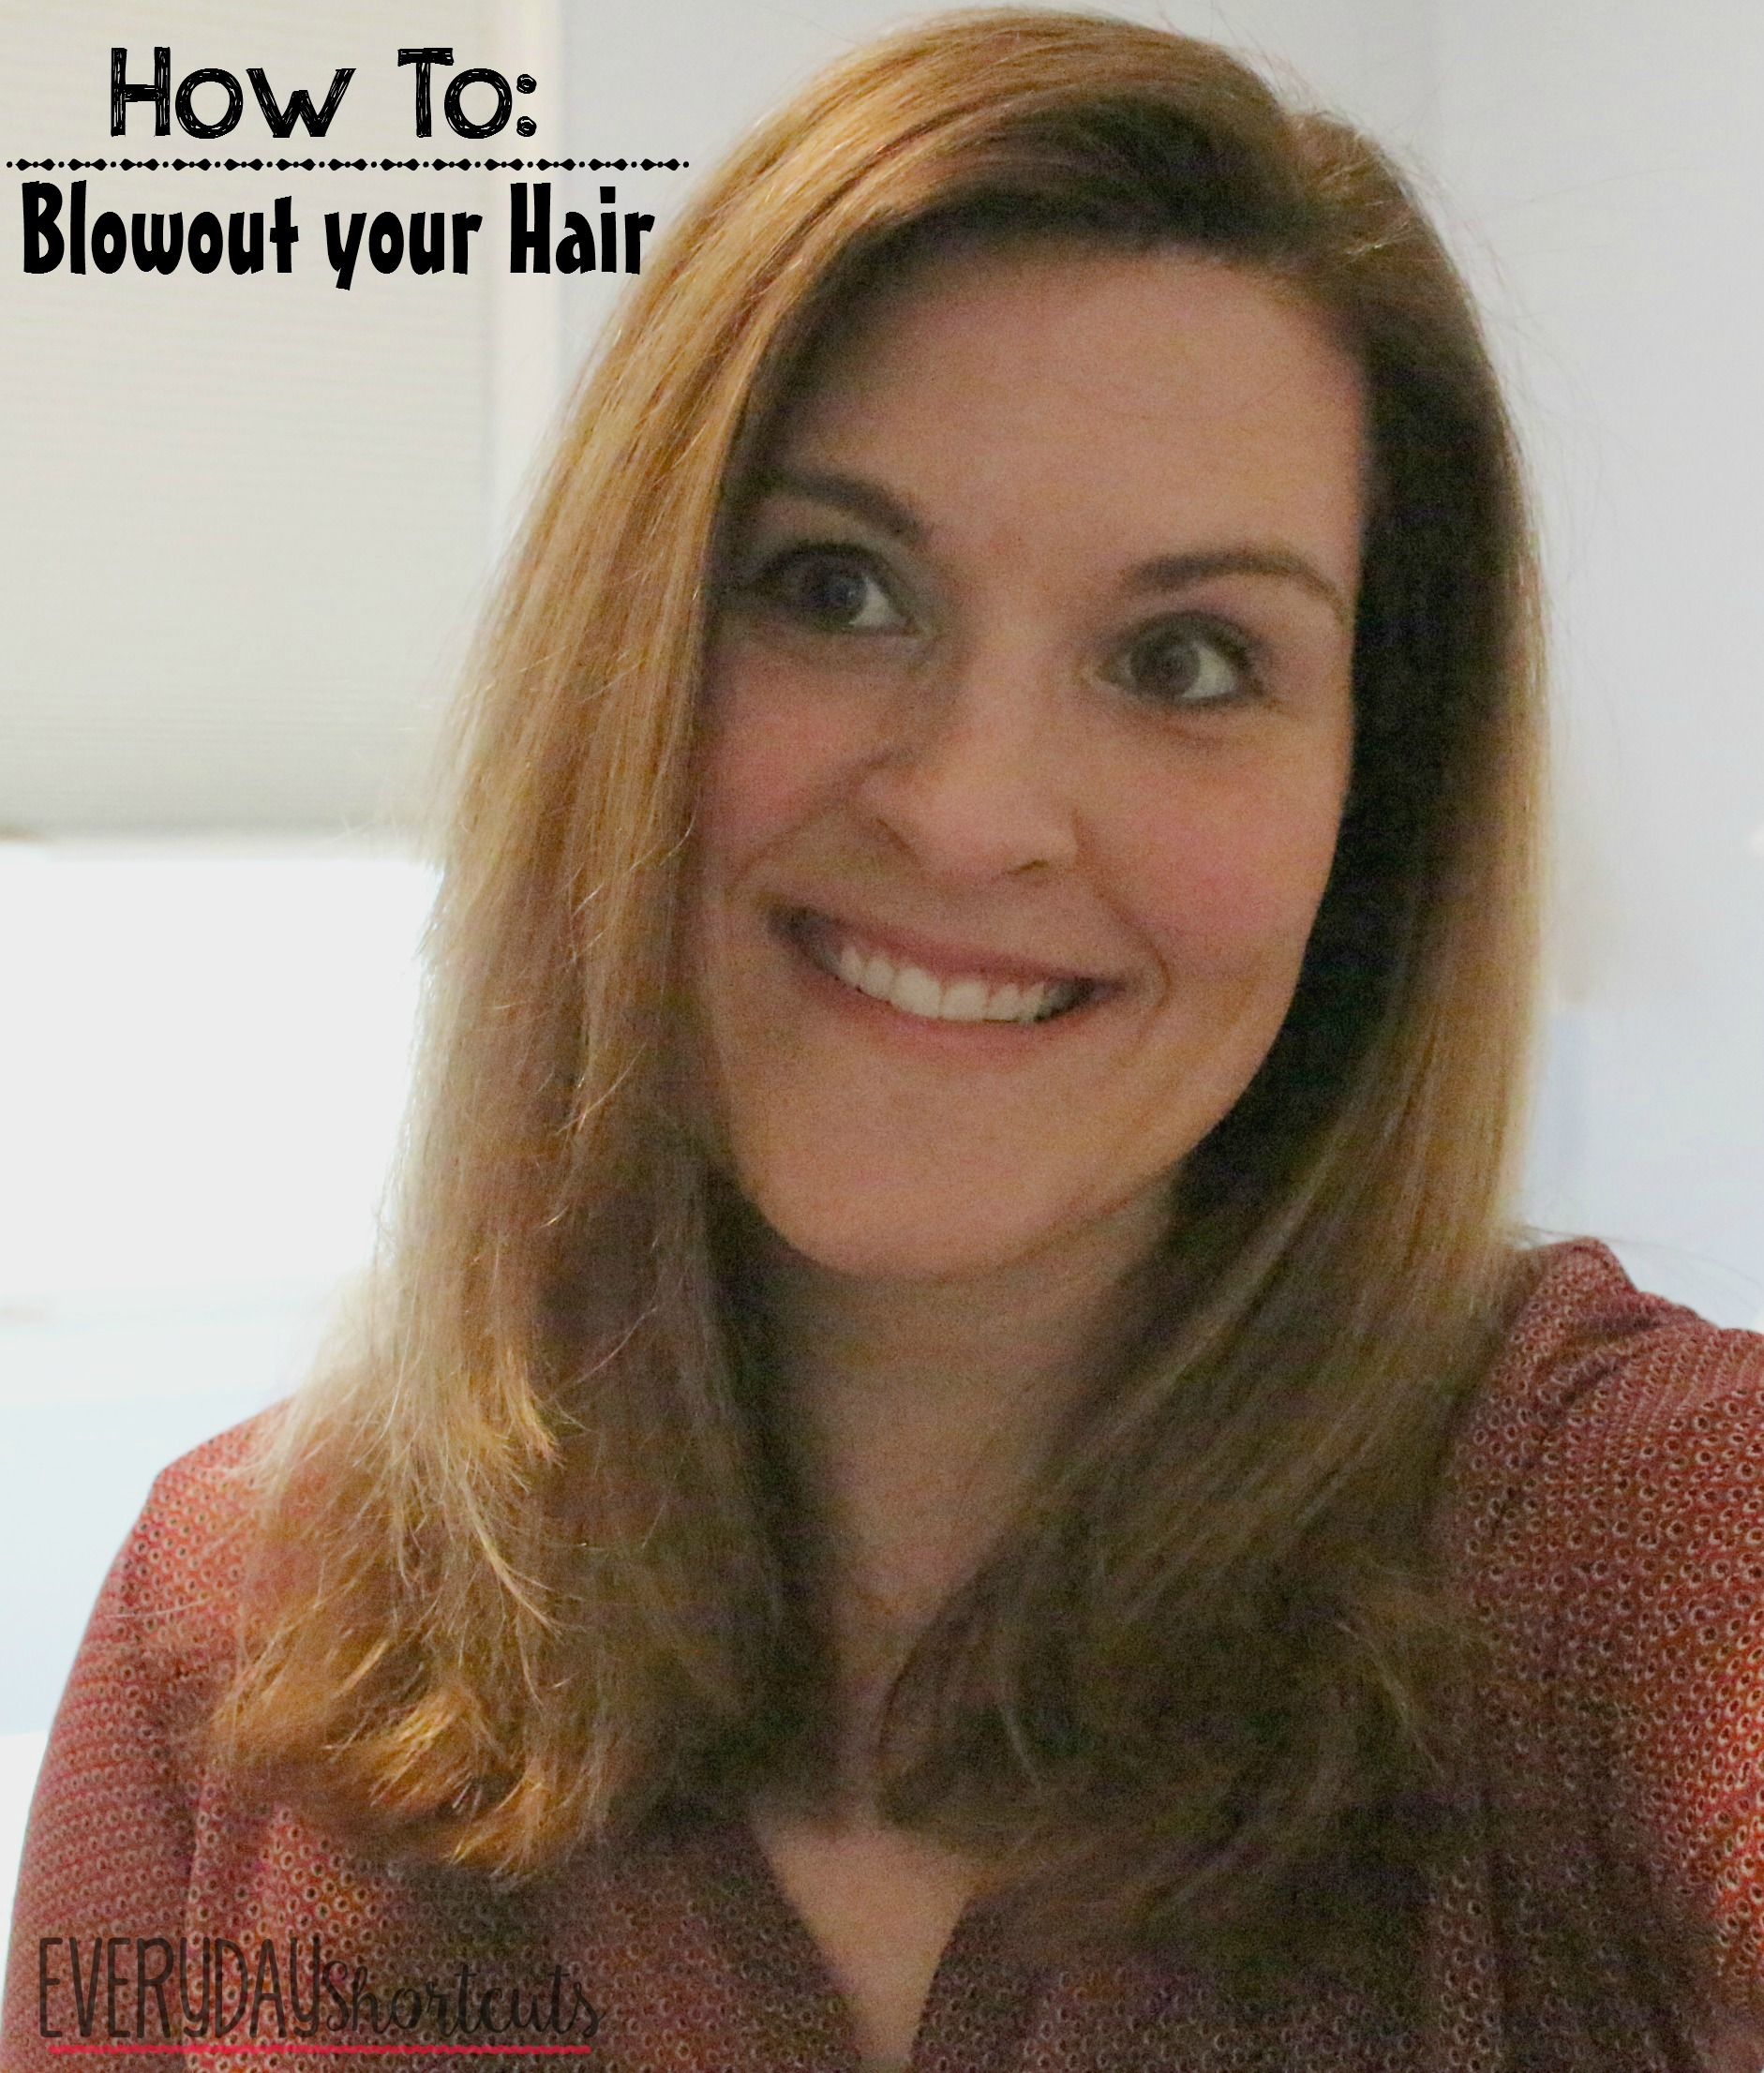 how to blowout your hair